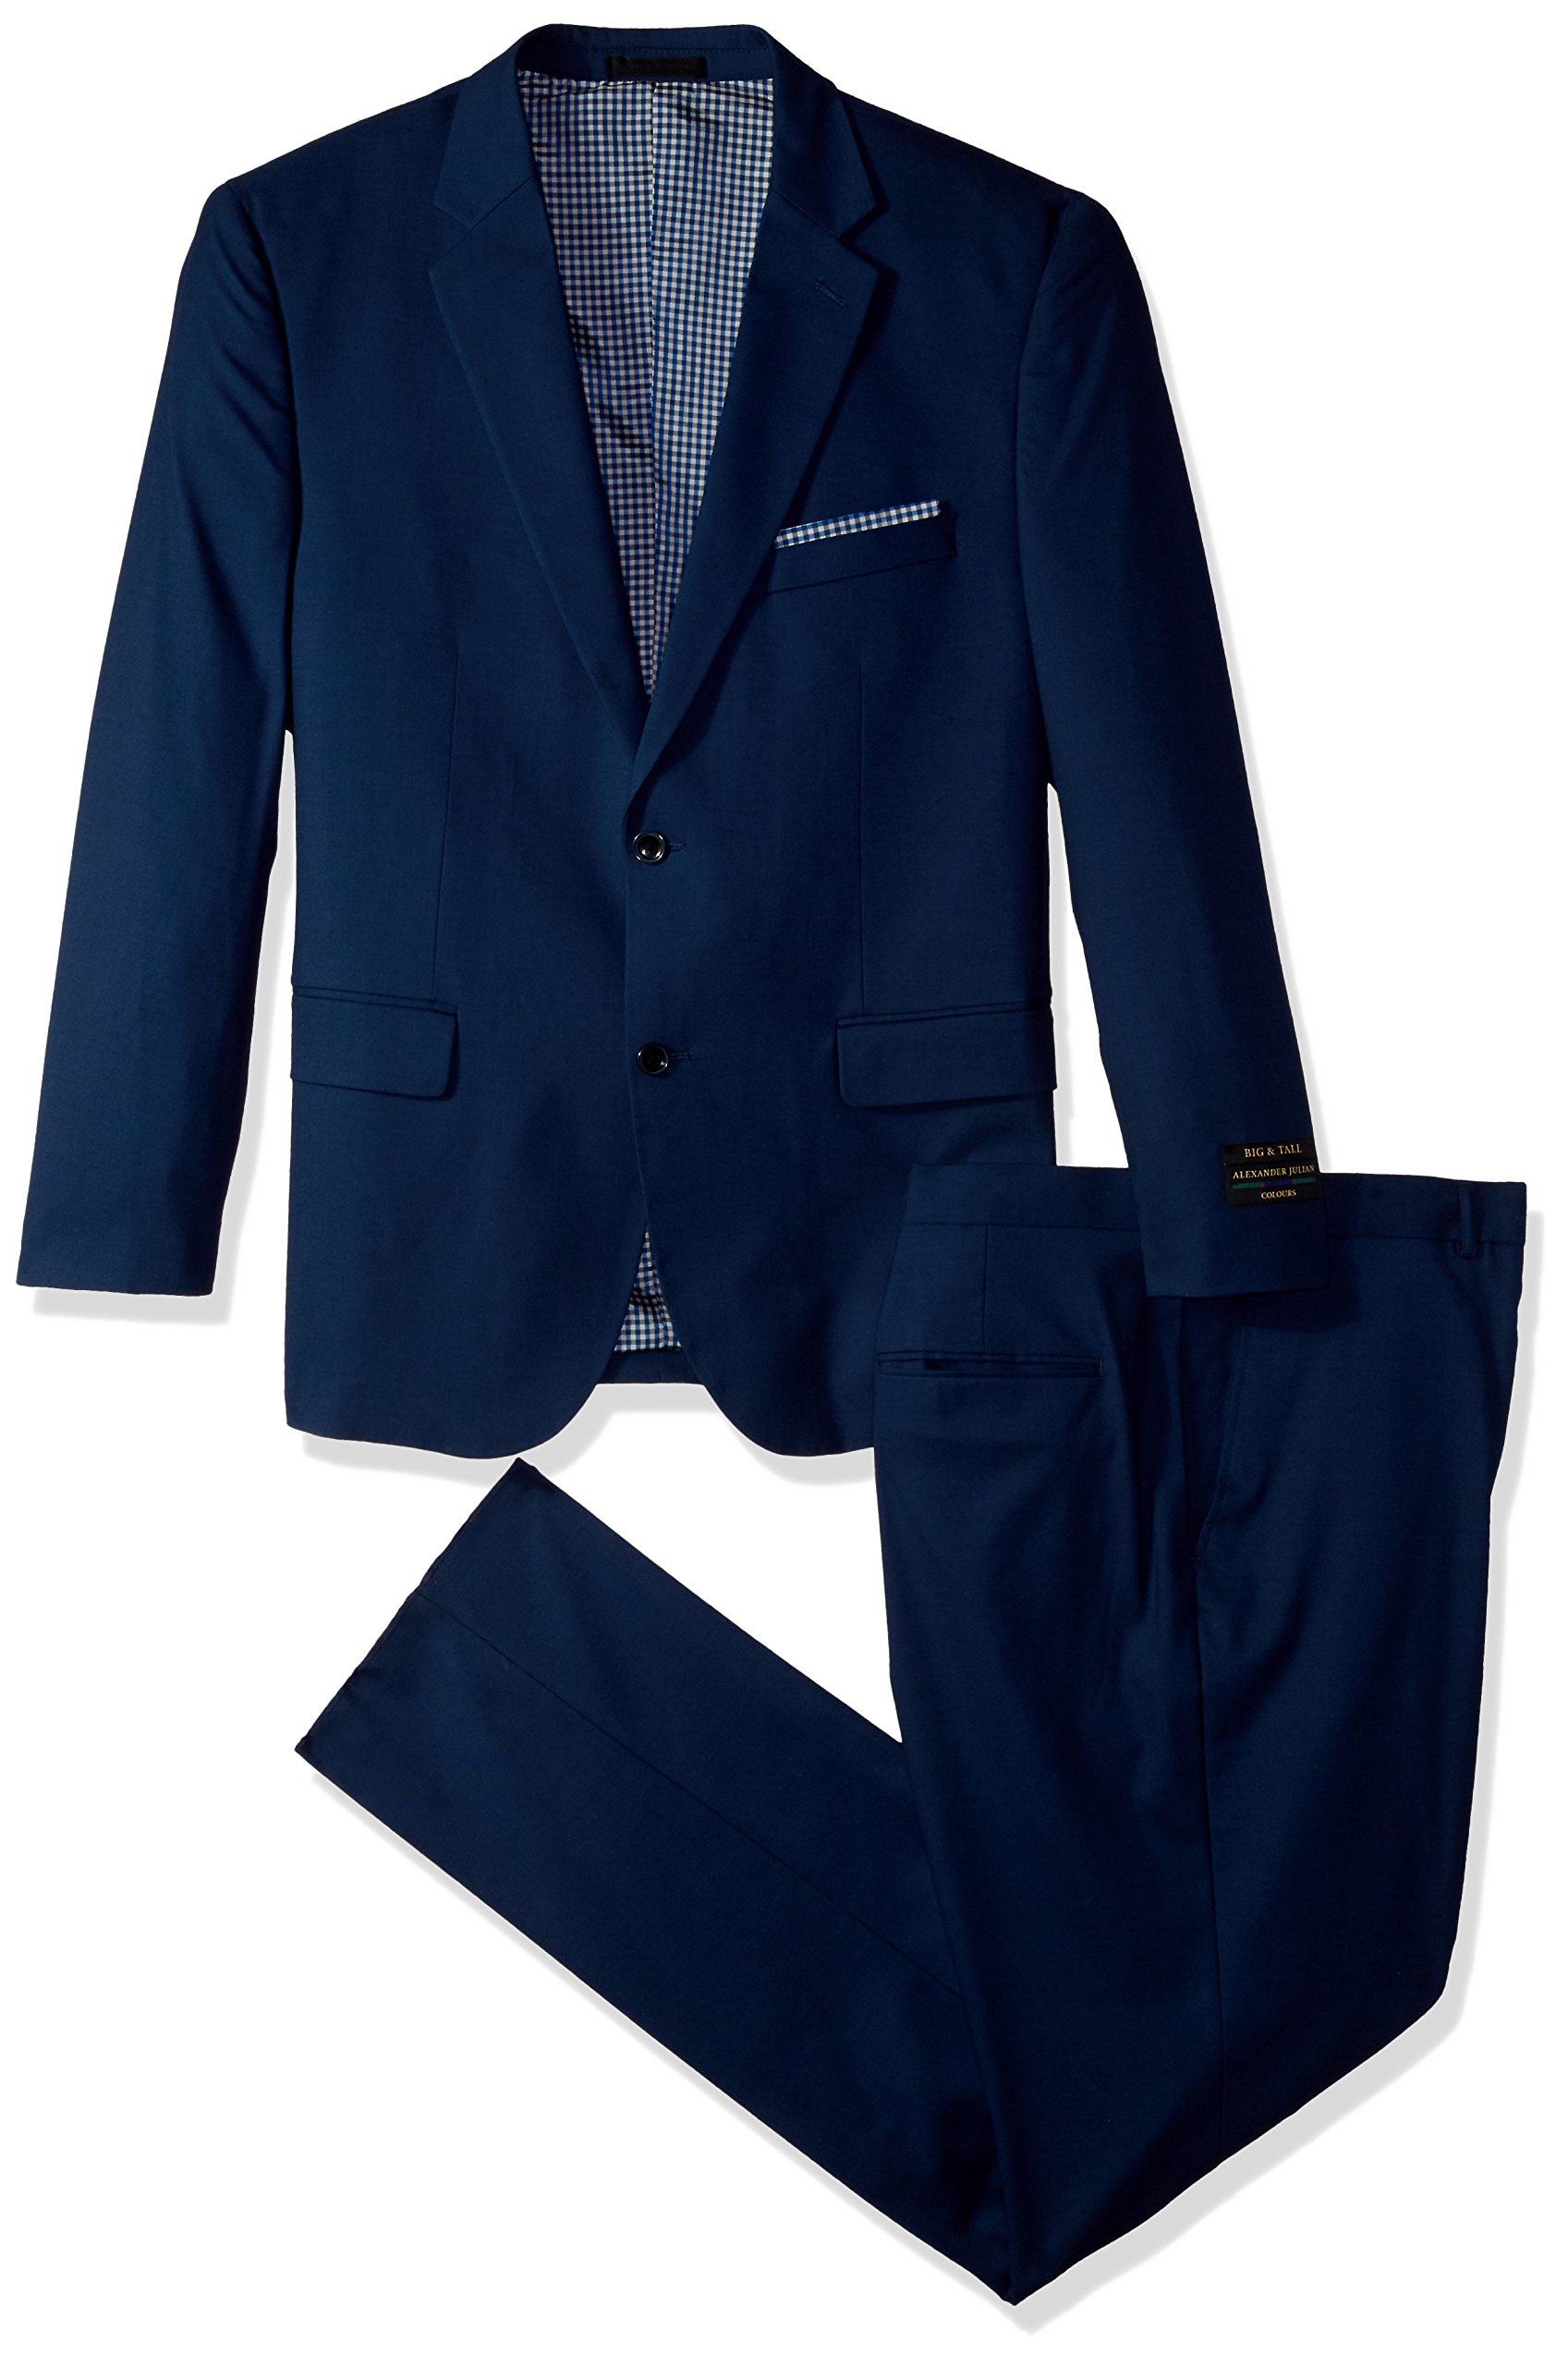 Alexander Julian Colours Men's Big and Tall Single Breasted Modern Fit Suit, French Blue, 54 Long